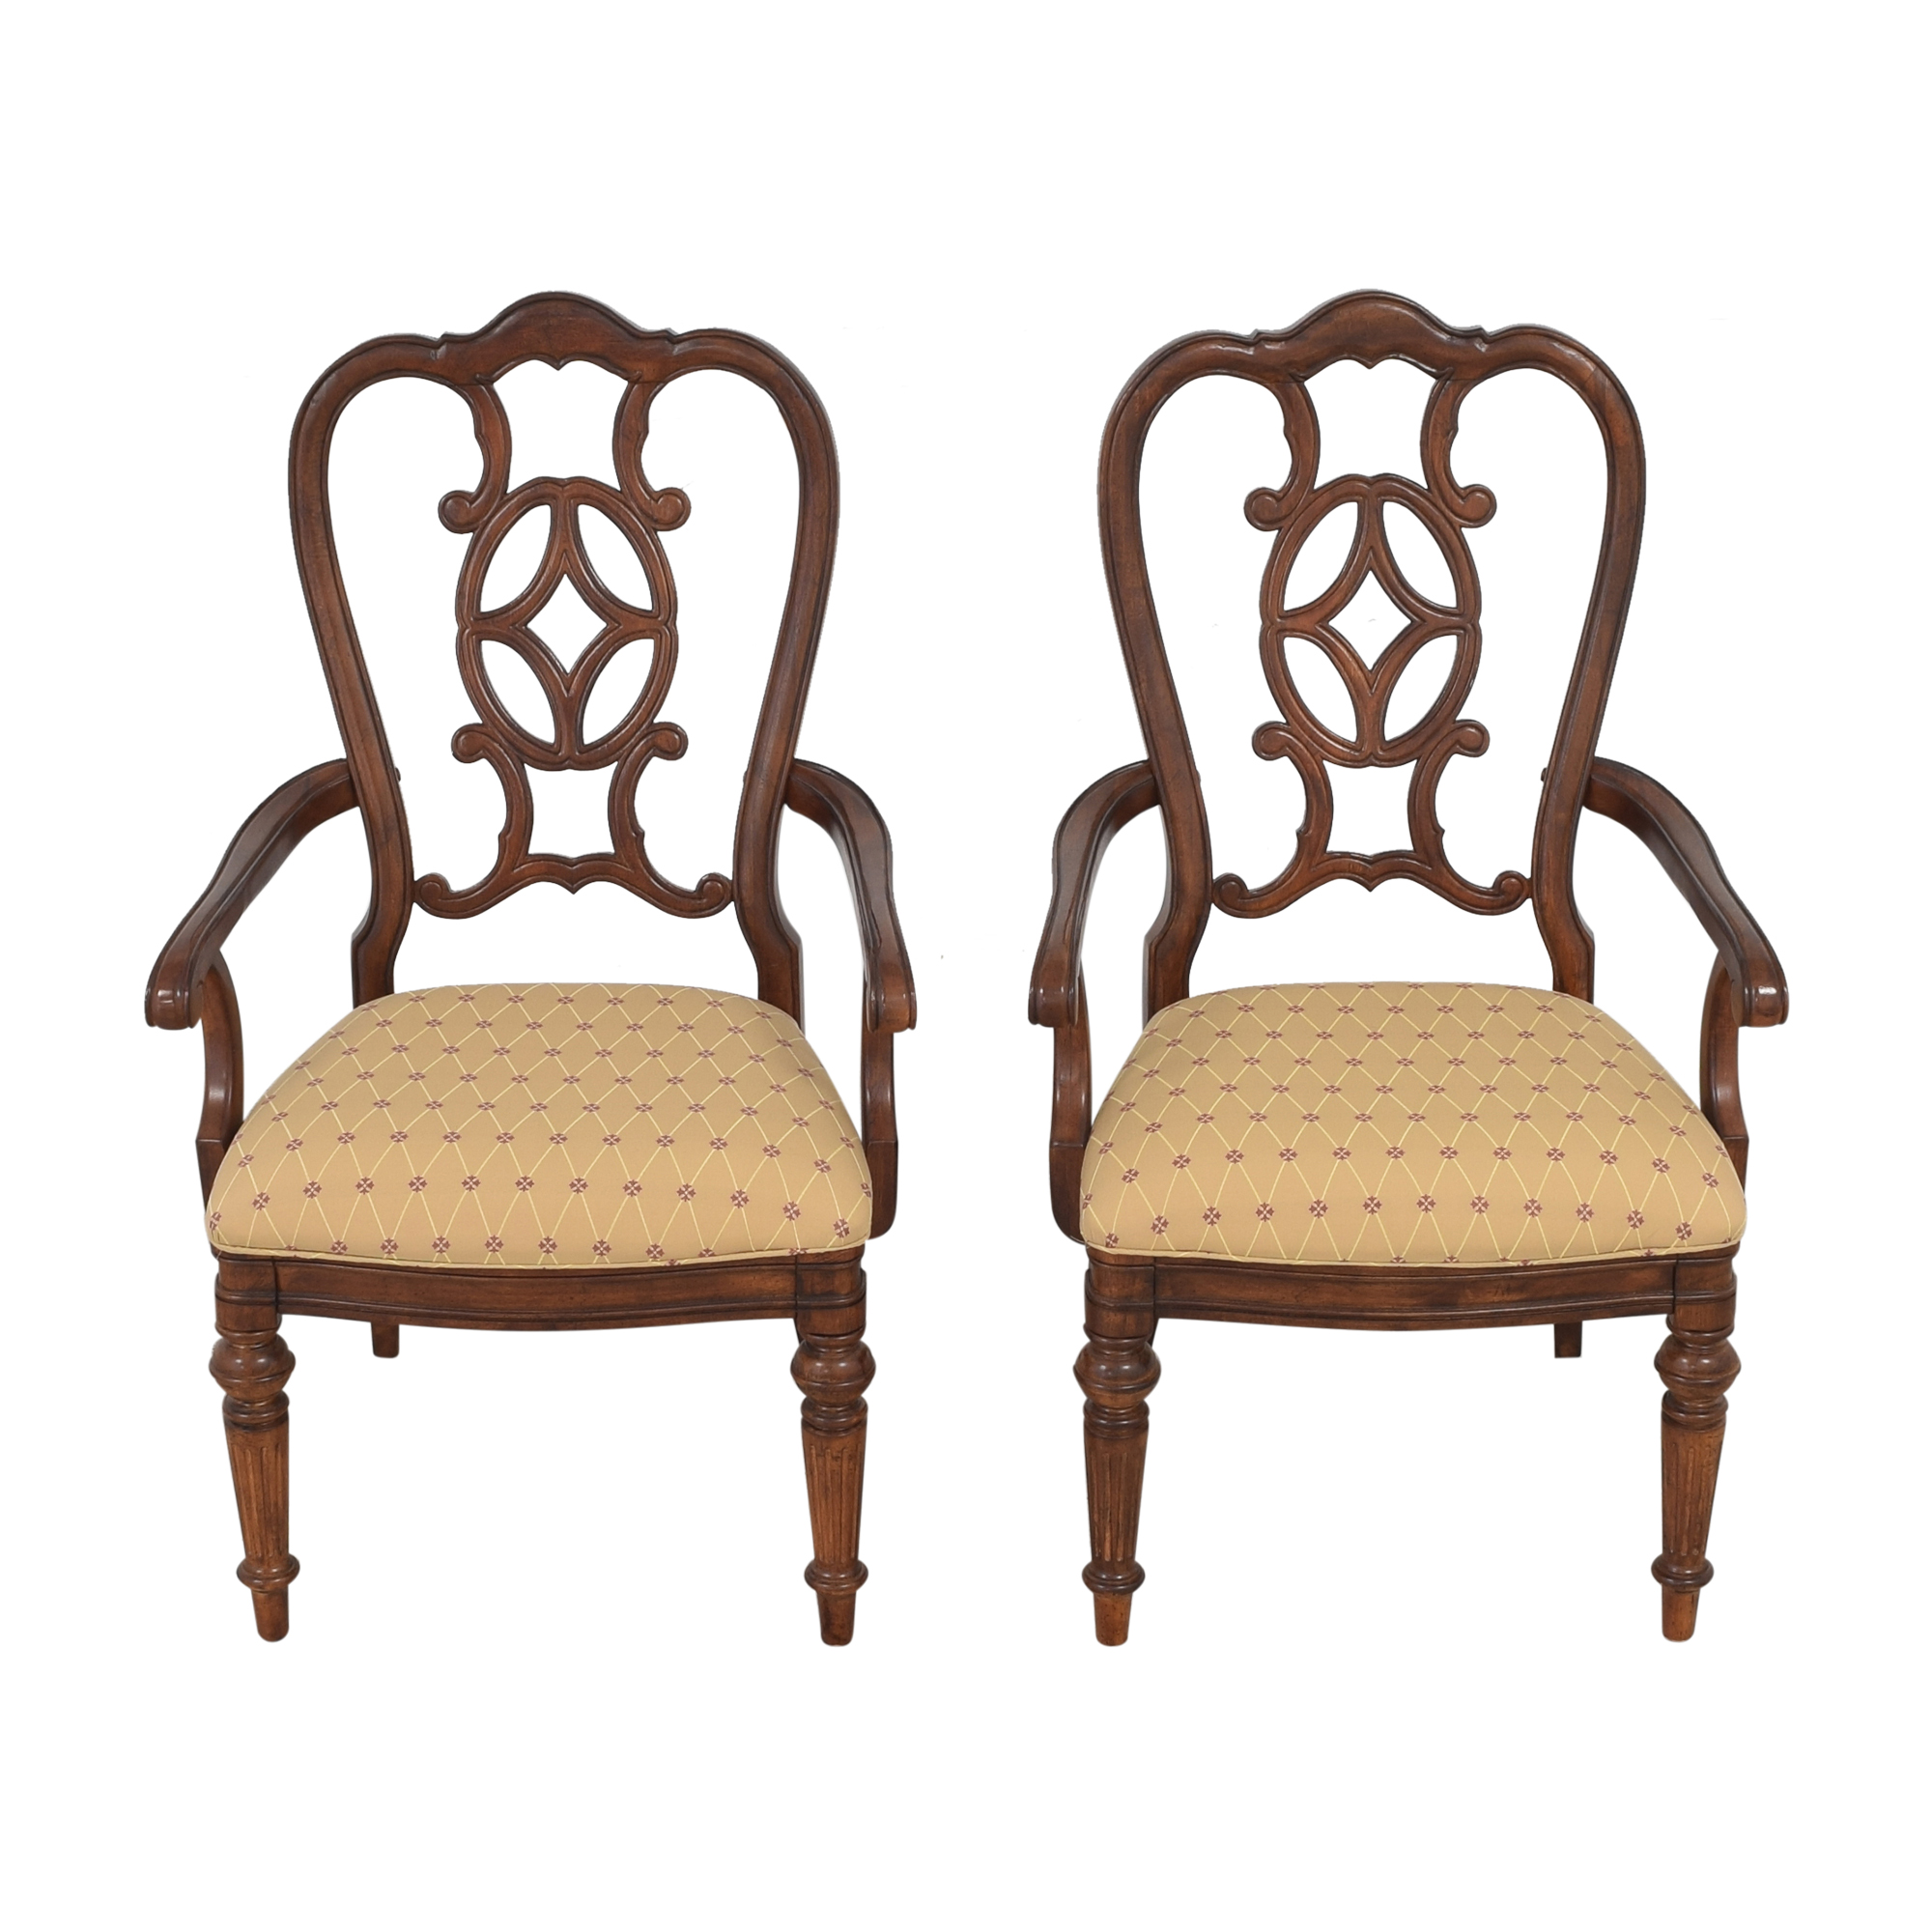 buy Thomasville Dining Arm Chairs Thomasville Dining Chairs